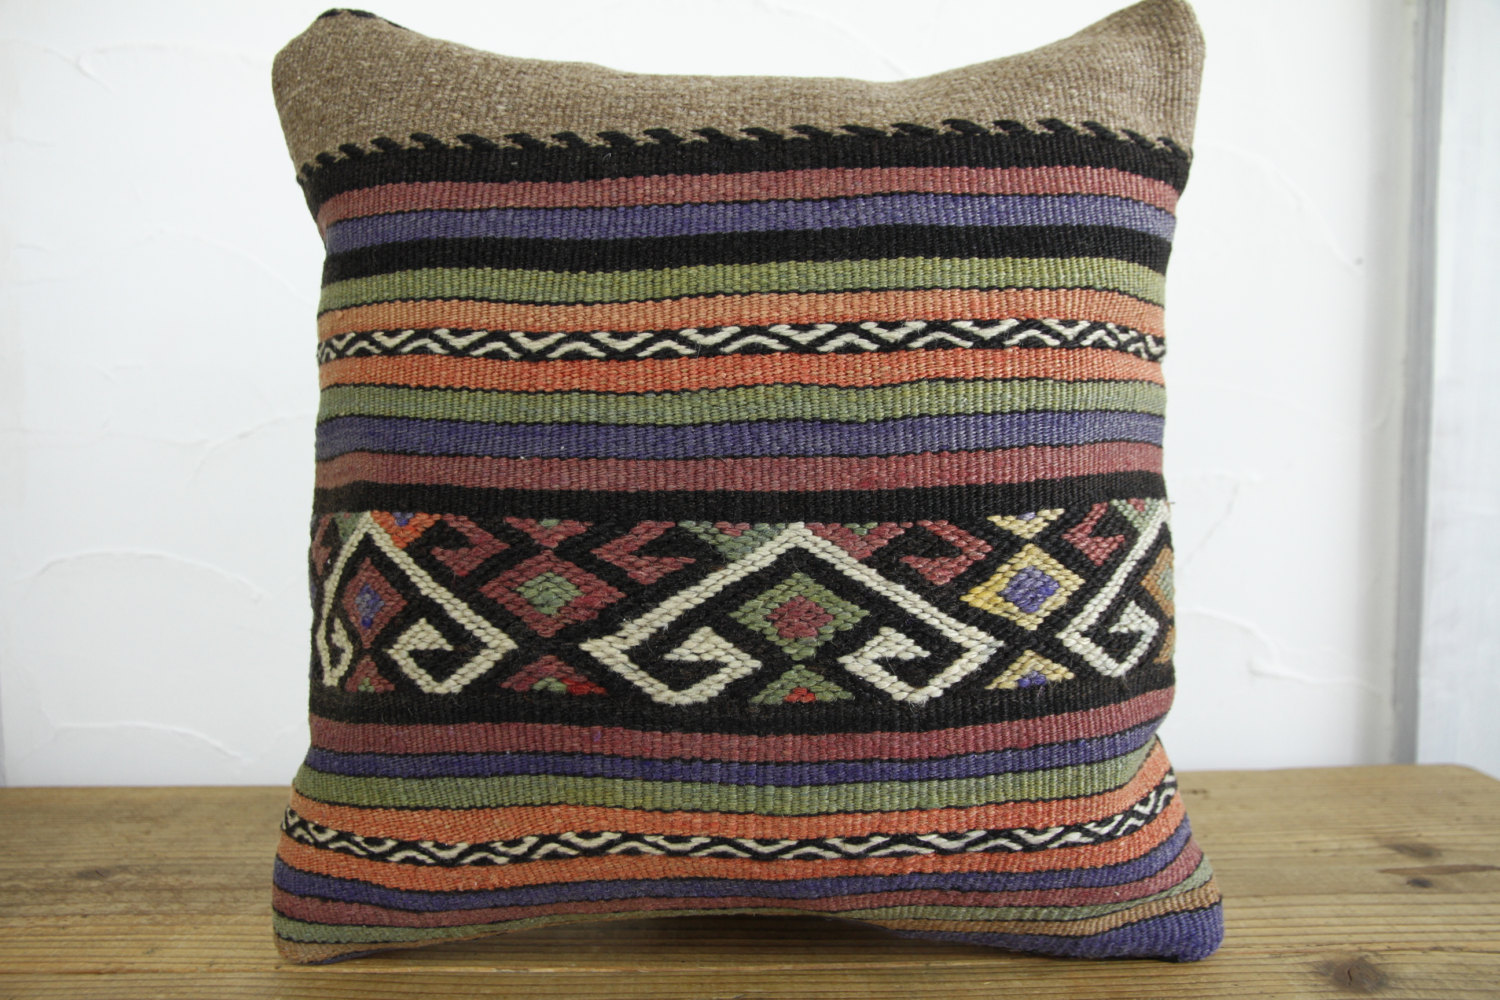 Kilim Pillows |16x16 | Decorative Pillows | 173 | Accent Pillows, Kilim cushion